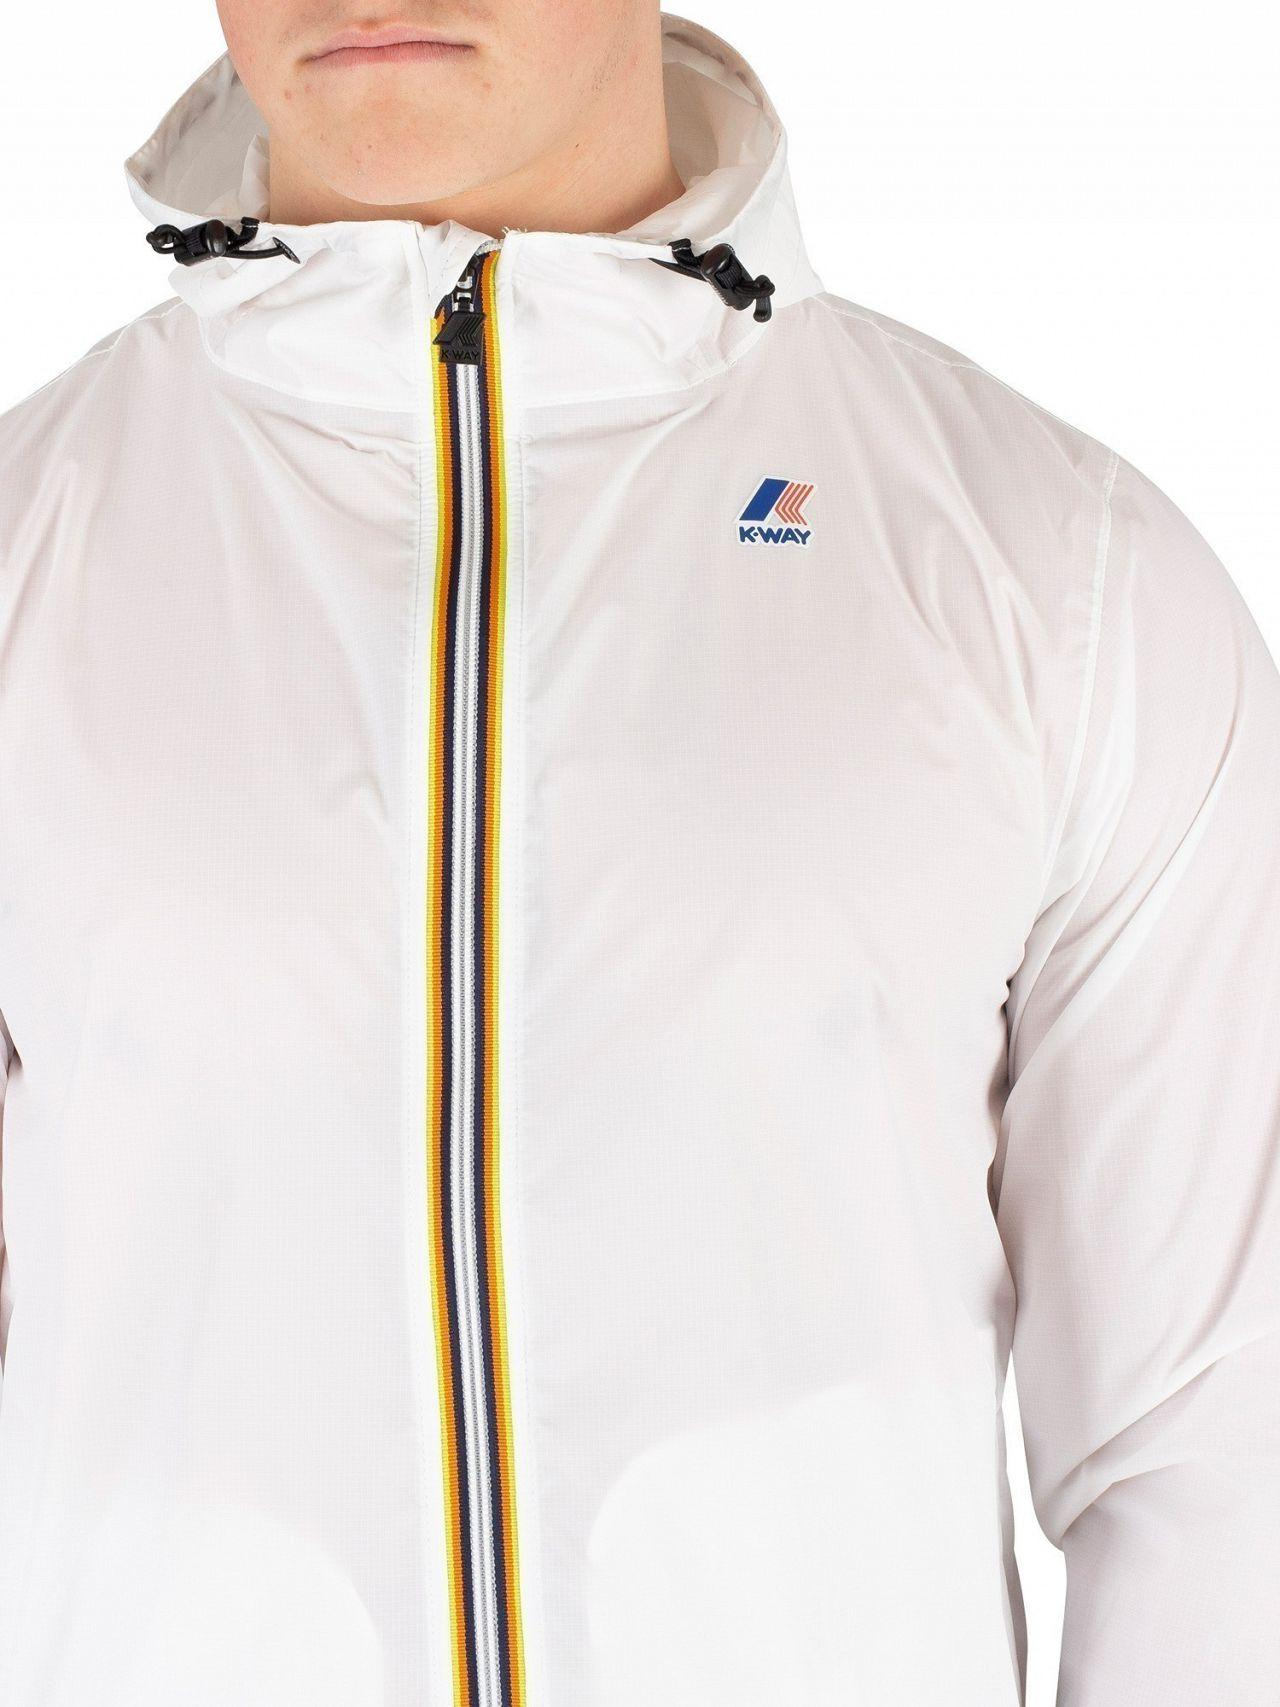 K-Way Synthetic Claude Le Vrai 3.0 Pac-a-mac Jacket in White for Men